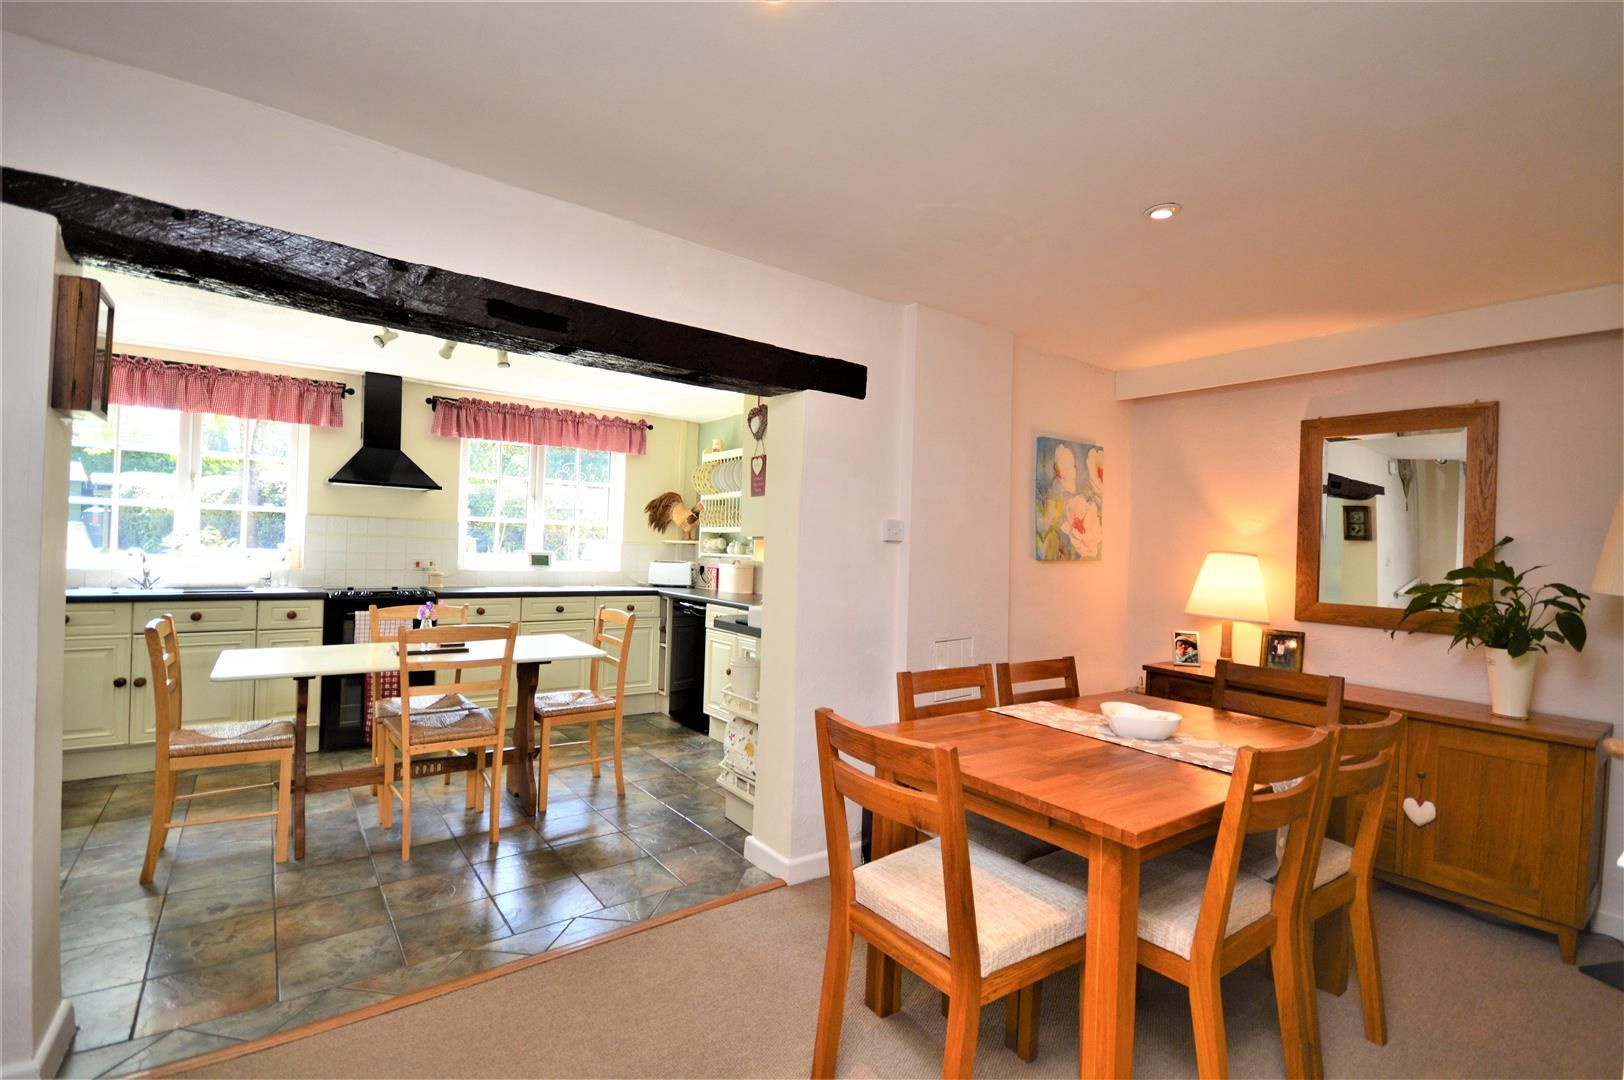 3 bed semi-detached for sale in Madley 4